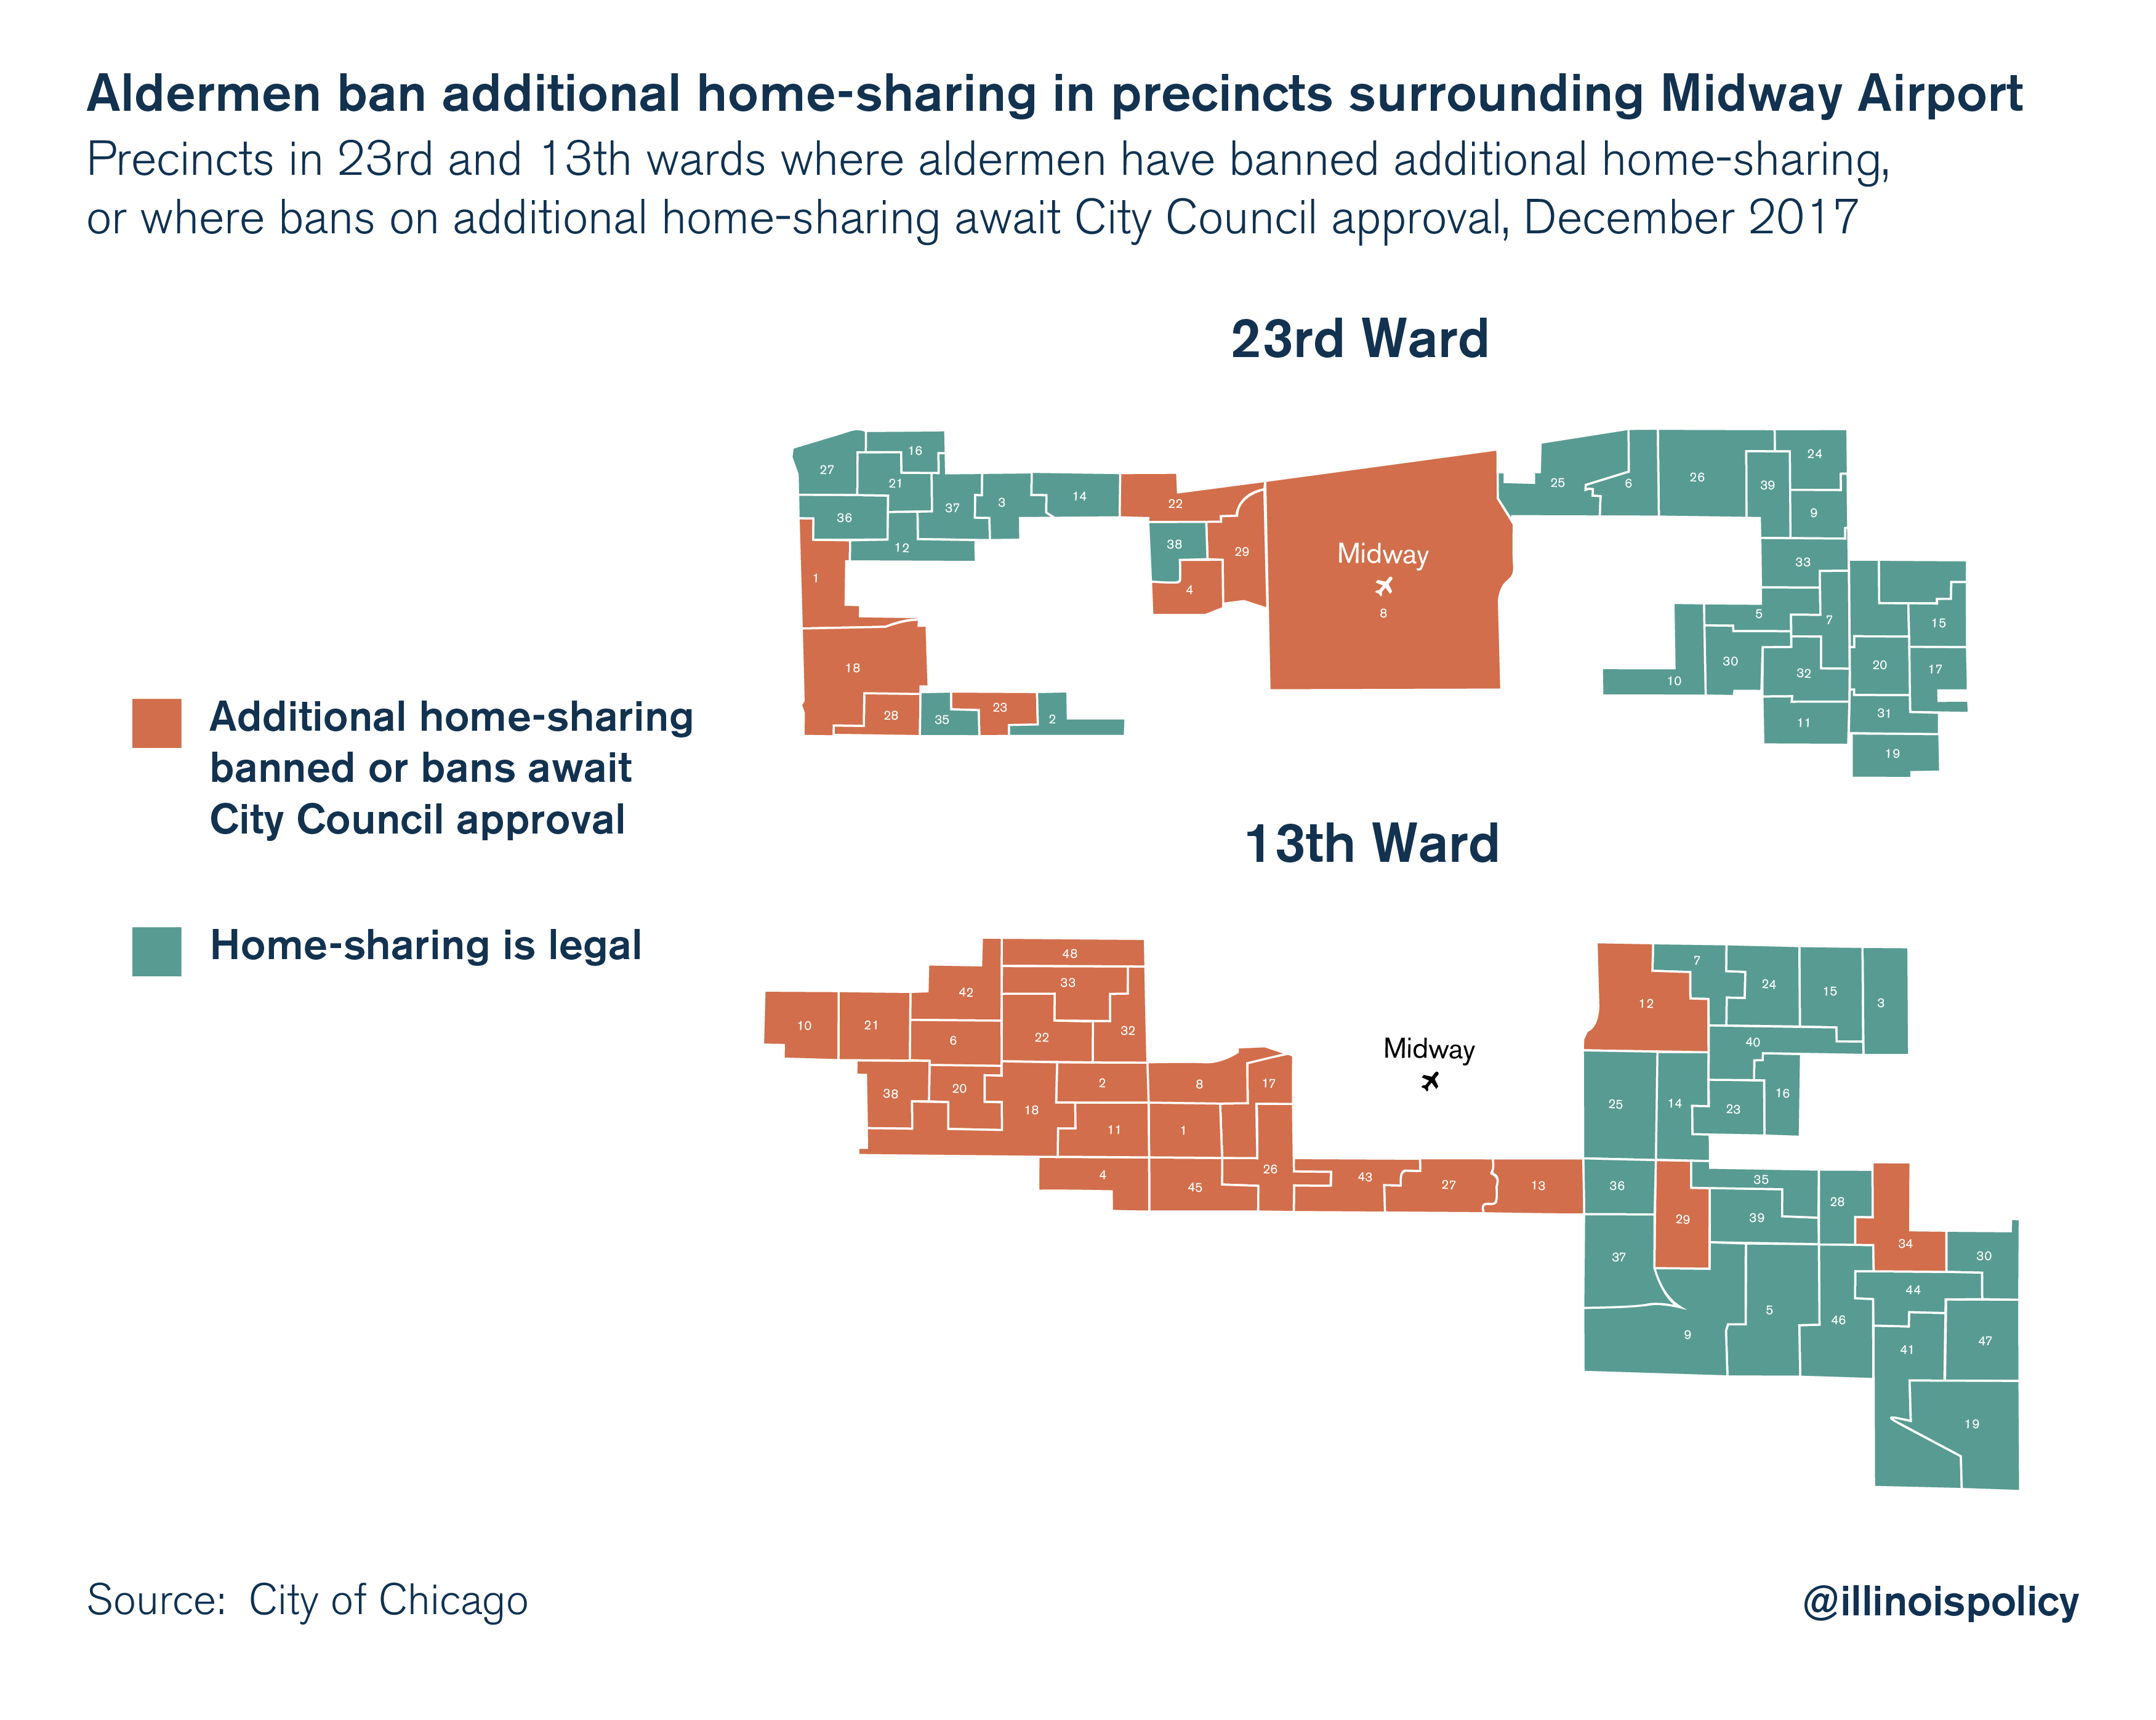 Aldermen ban additional home-sharing in precincts surrounding Midway Airport